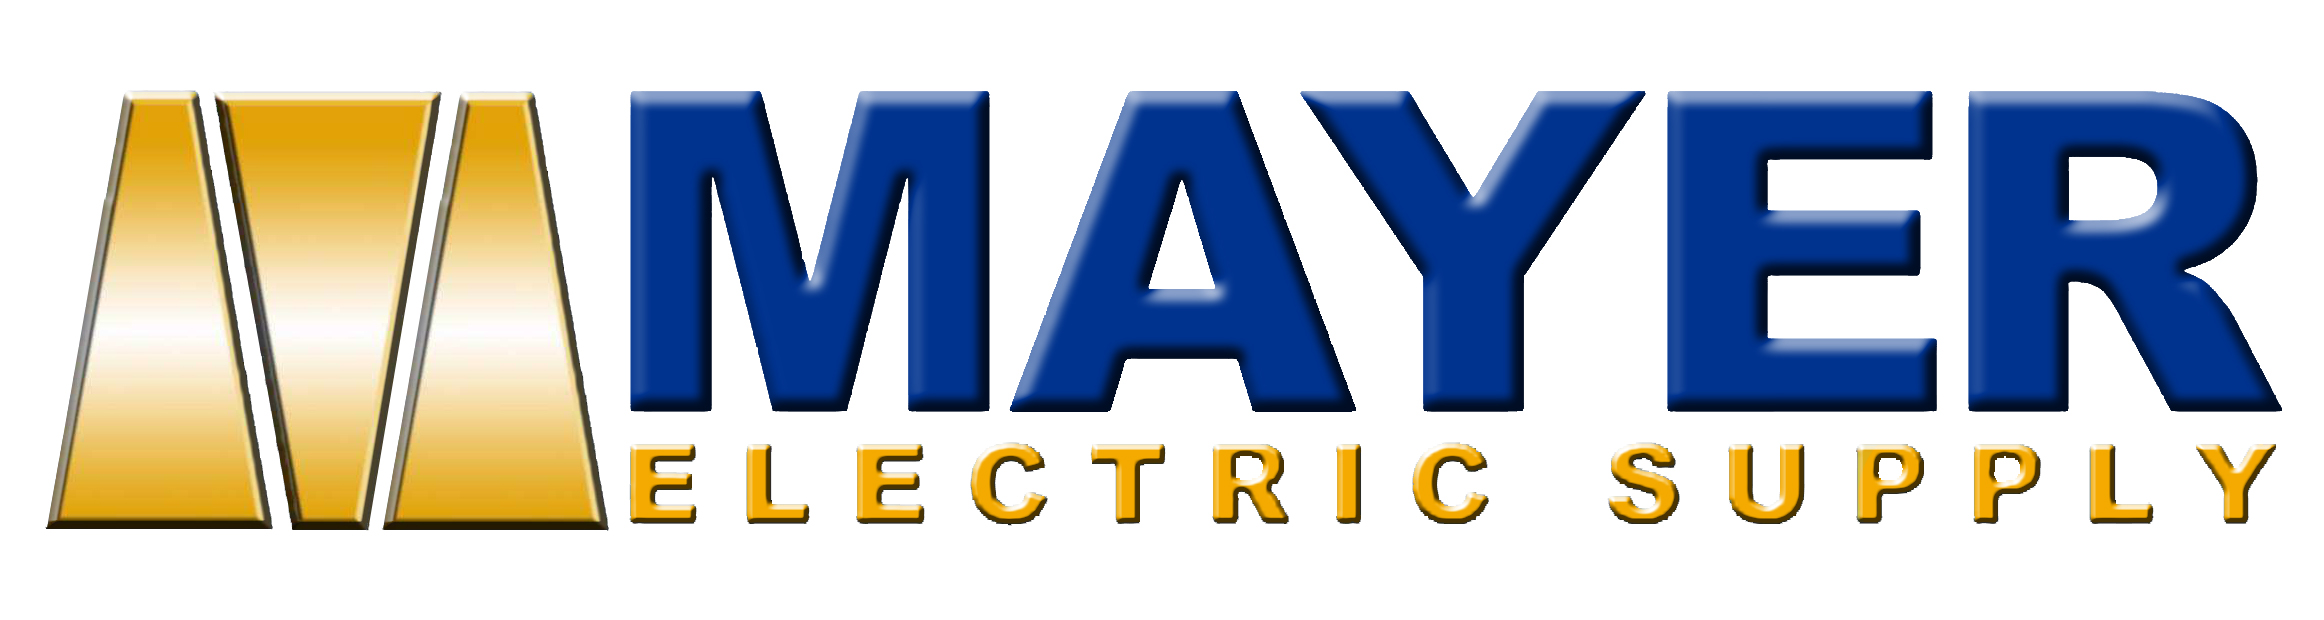 Mayer Electric Supply logo